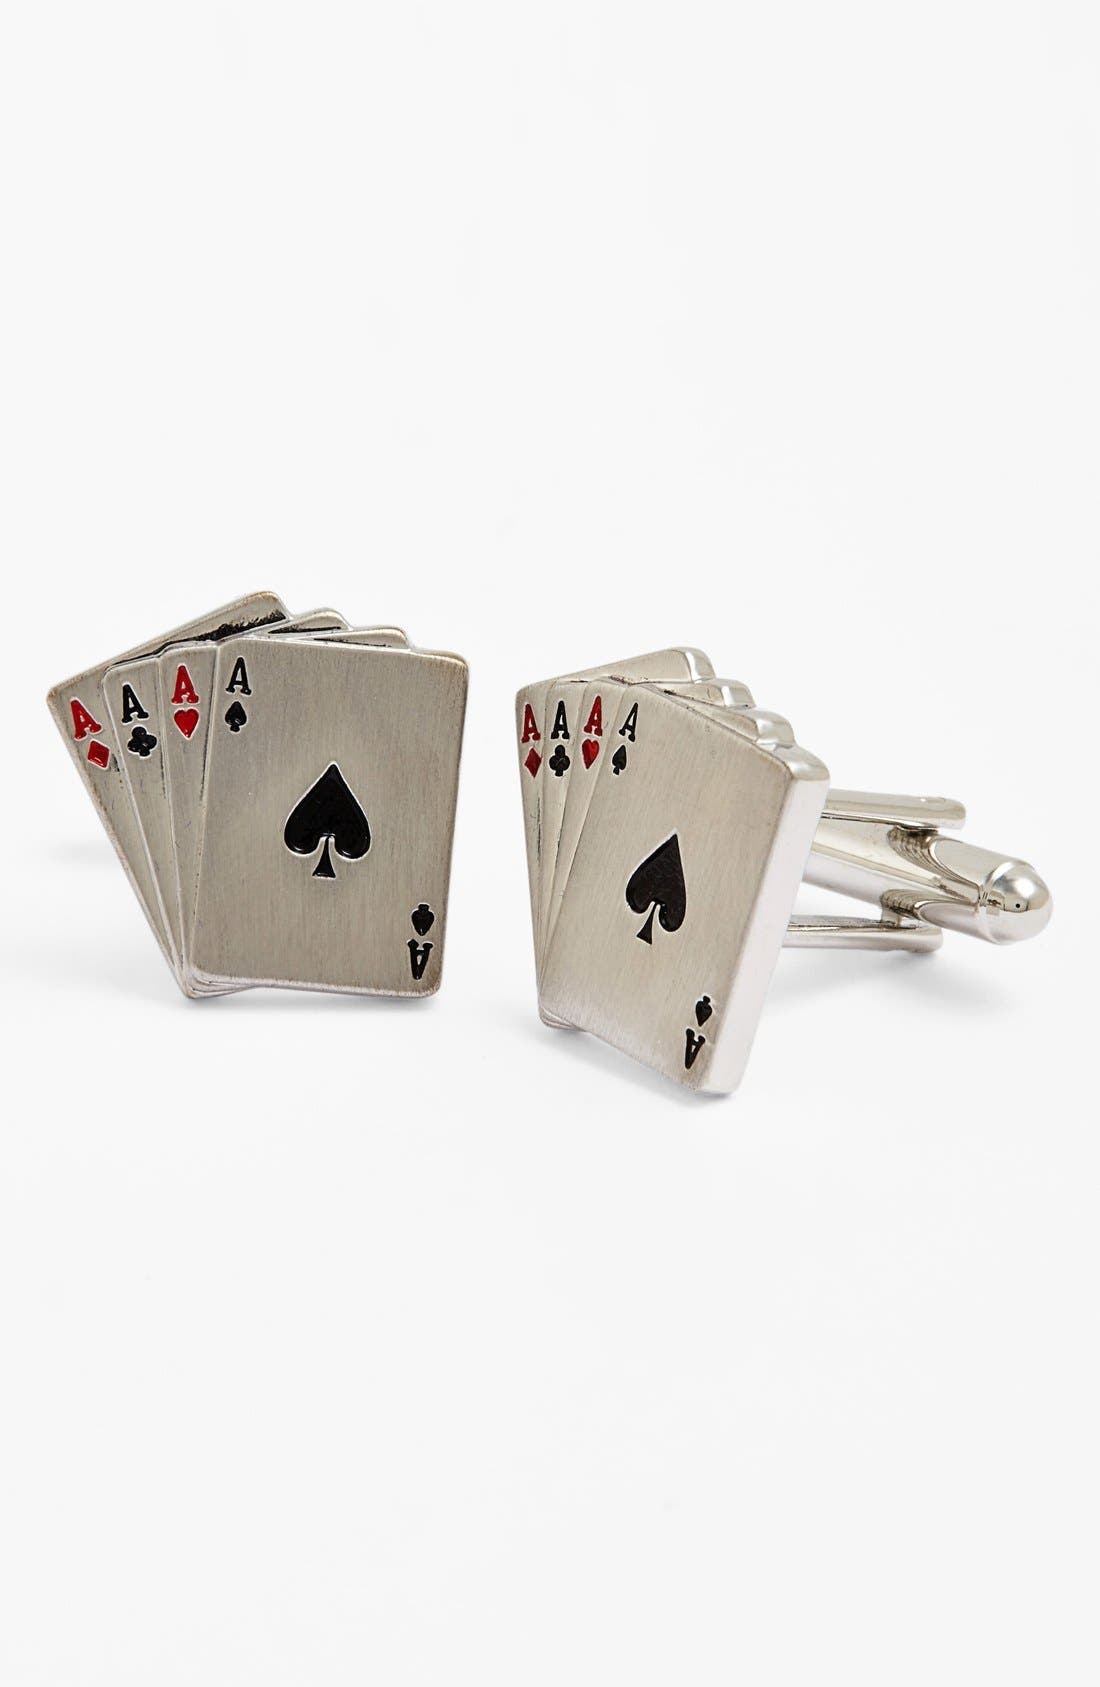 'Aces Wild' Cuff Links,                         Main,                         color, Silver/ Red/ Black